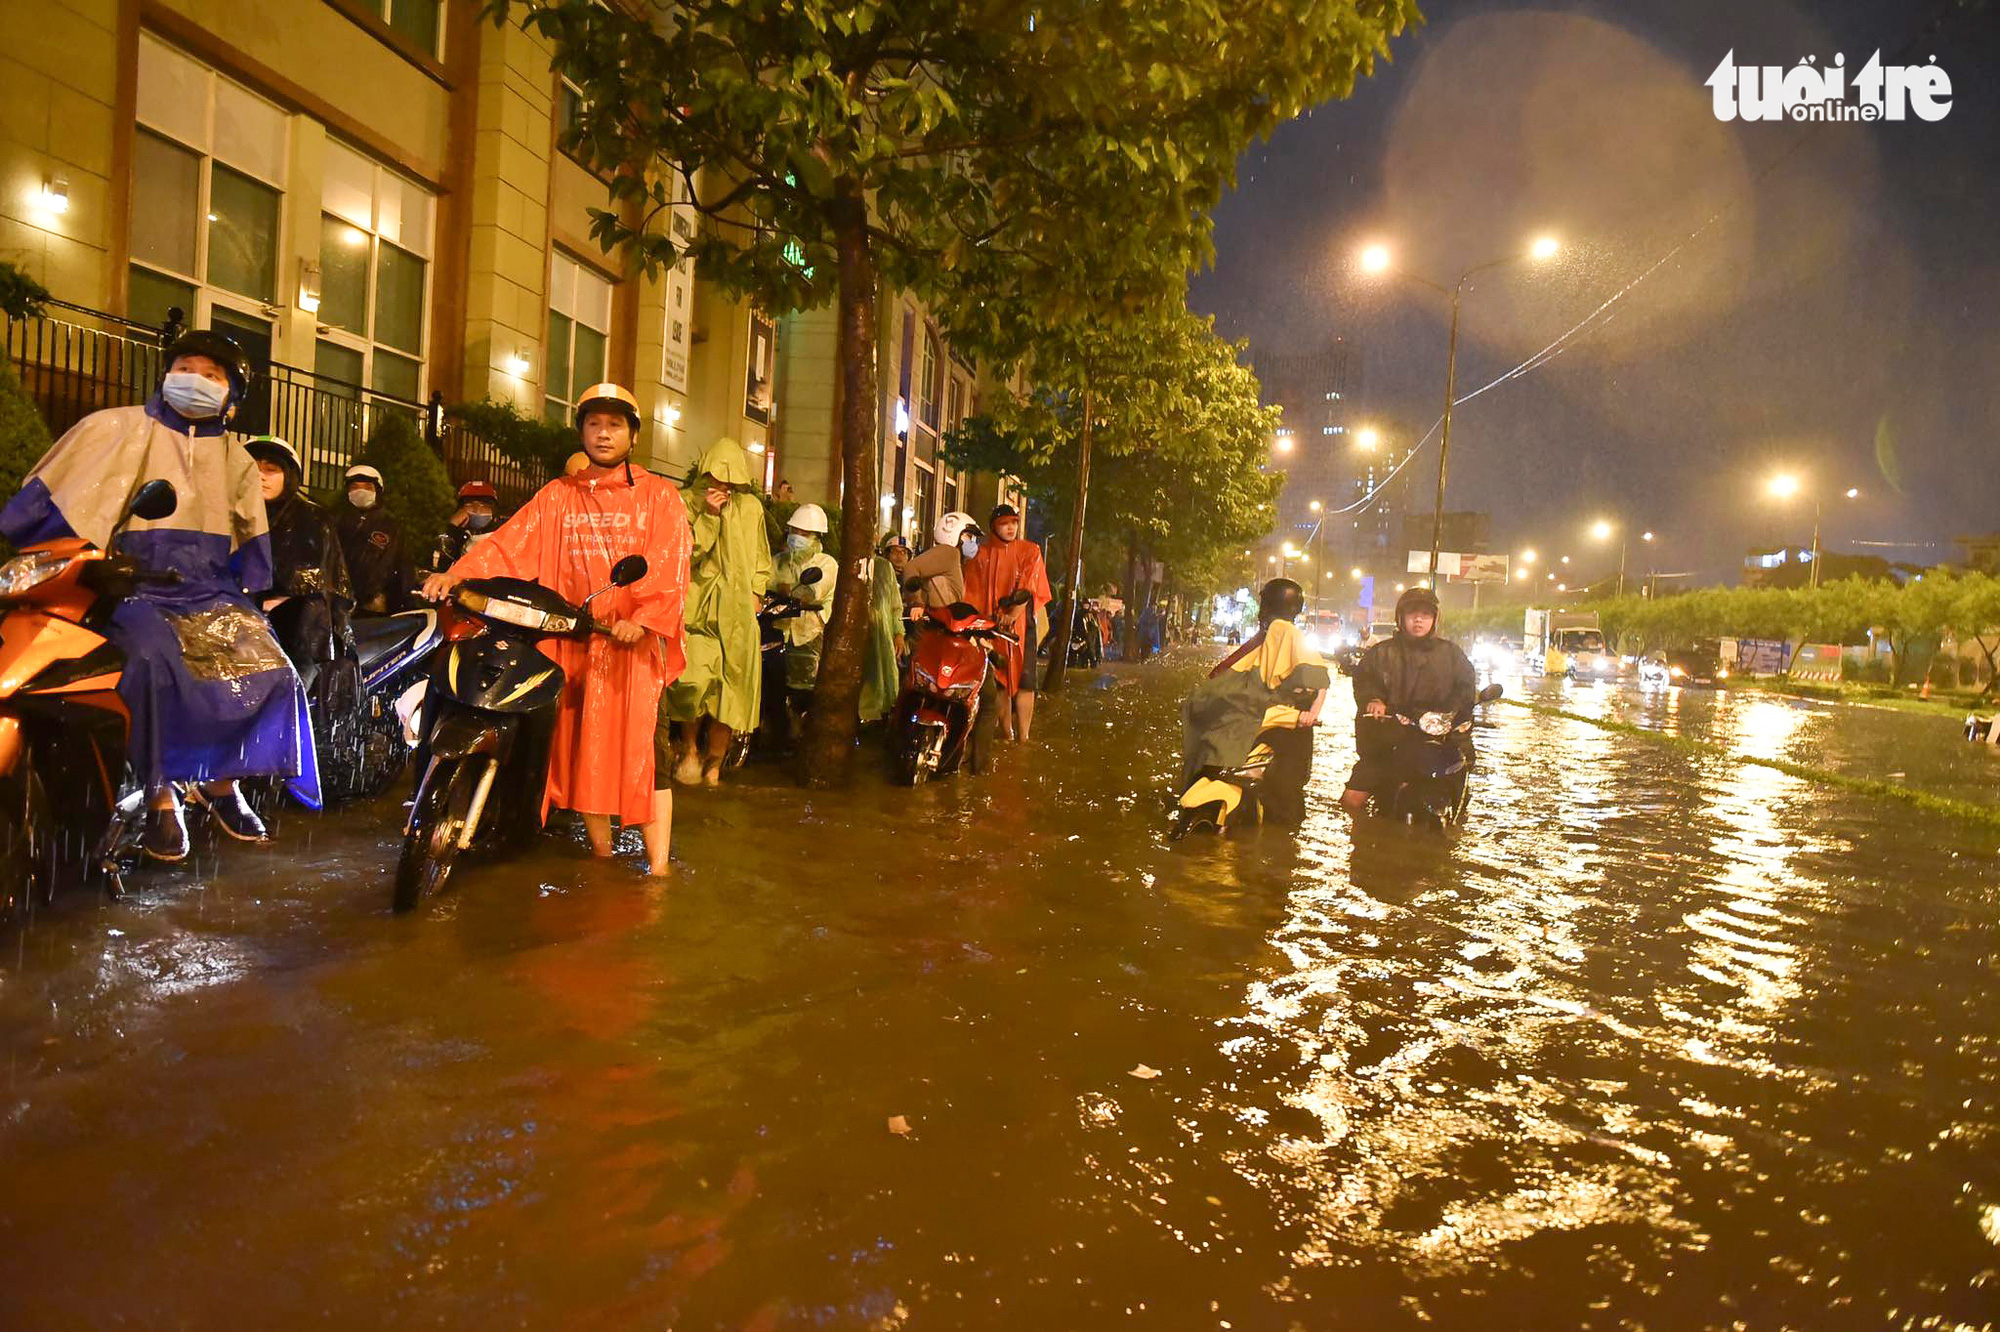 Motorcyclists wait for the floodwater to recede in Ho Chi Minh City, August 6, 2020. Photo: Tuoi Tre